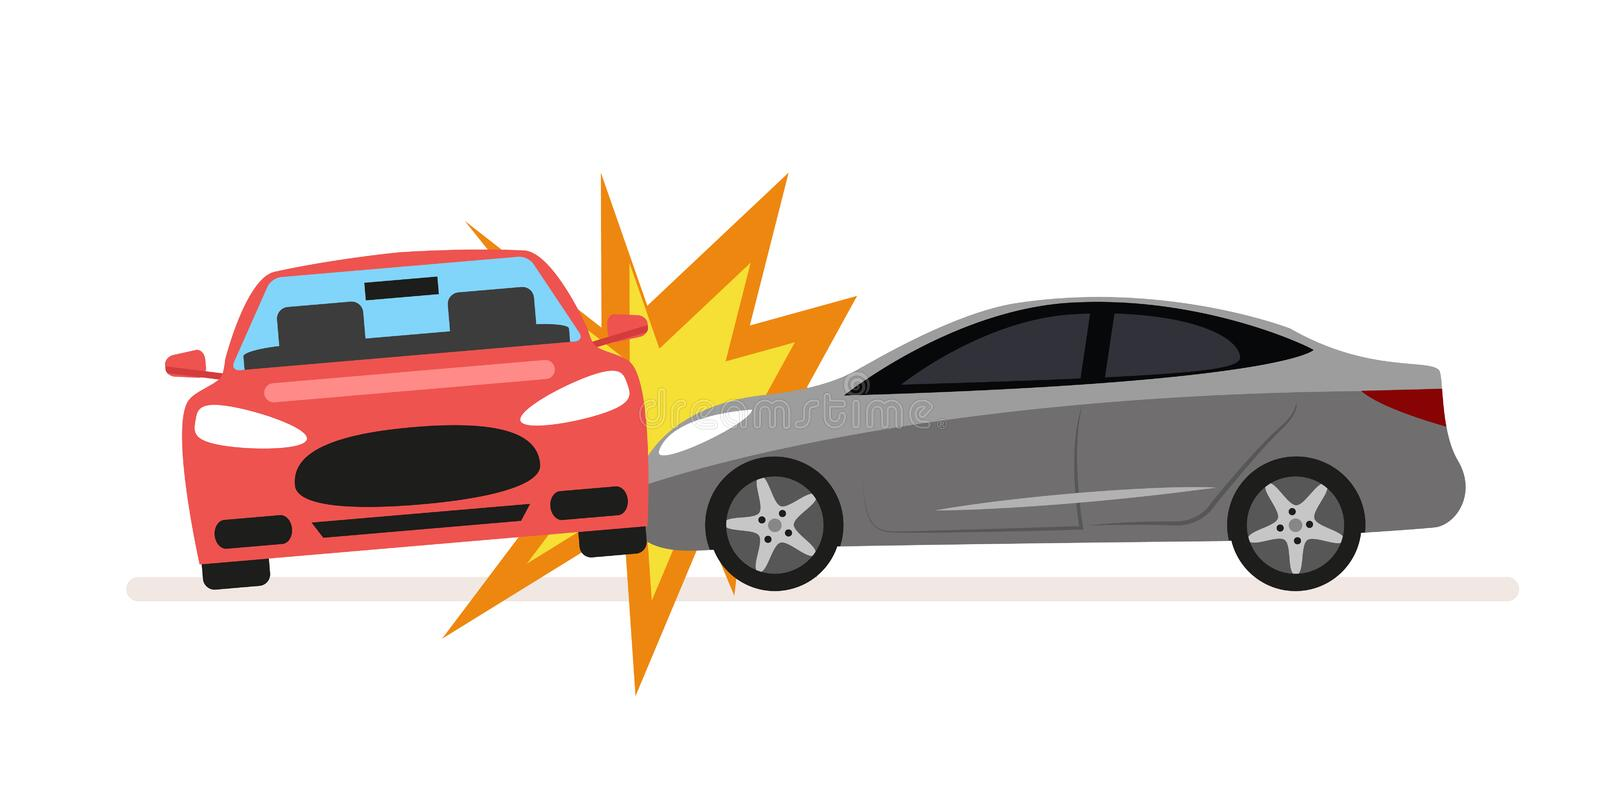 Collision of cars. Car crash involving two cars. A drunk or inconsiderate driver caused a serious traffic accident. Flat stock illustration